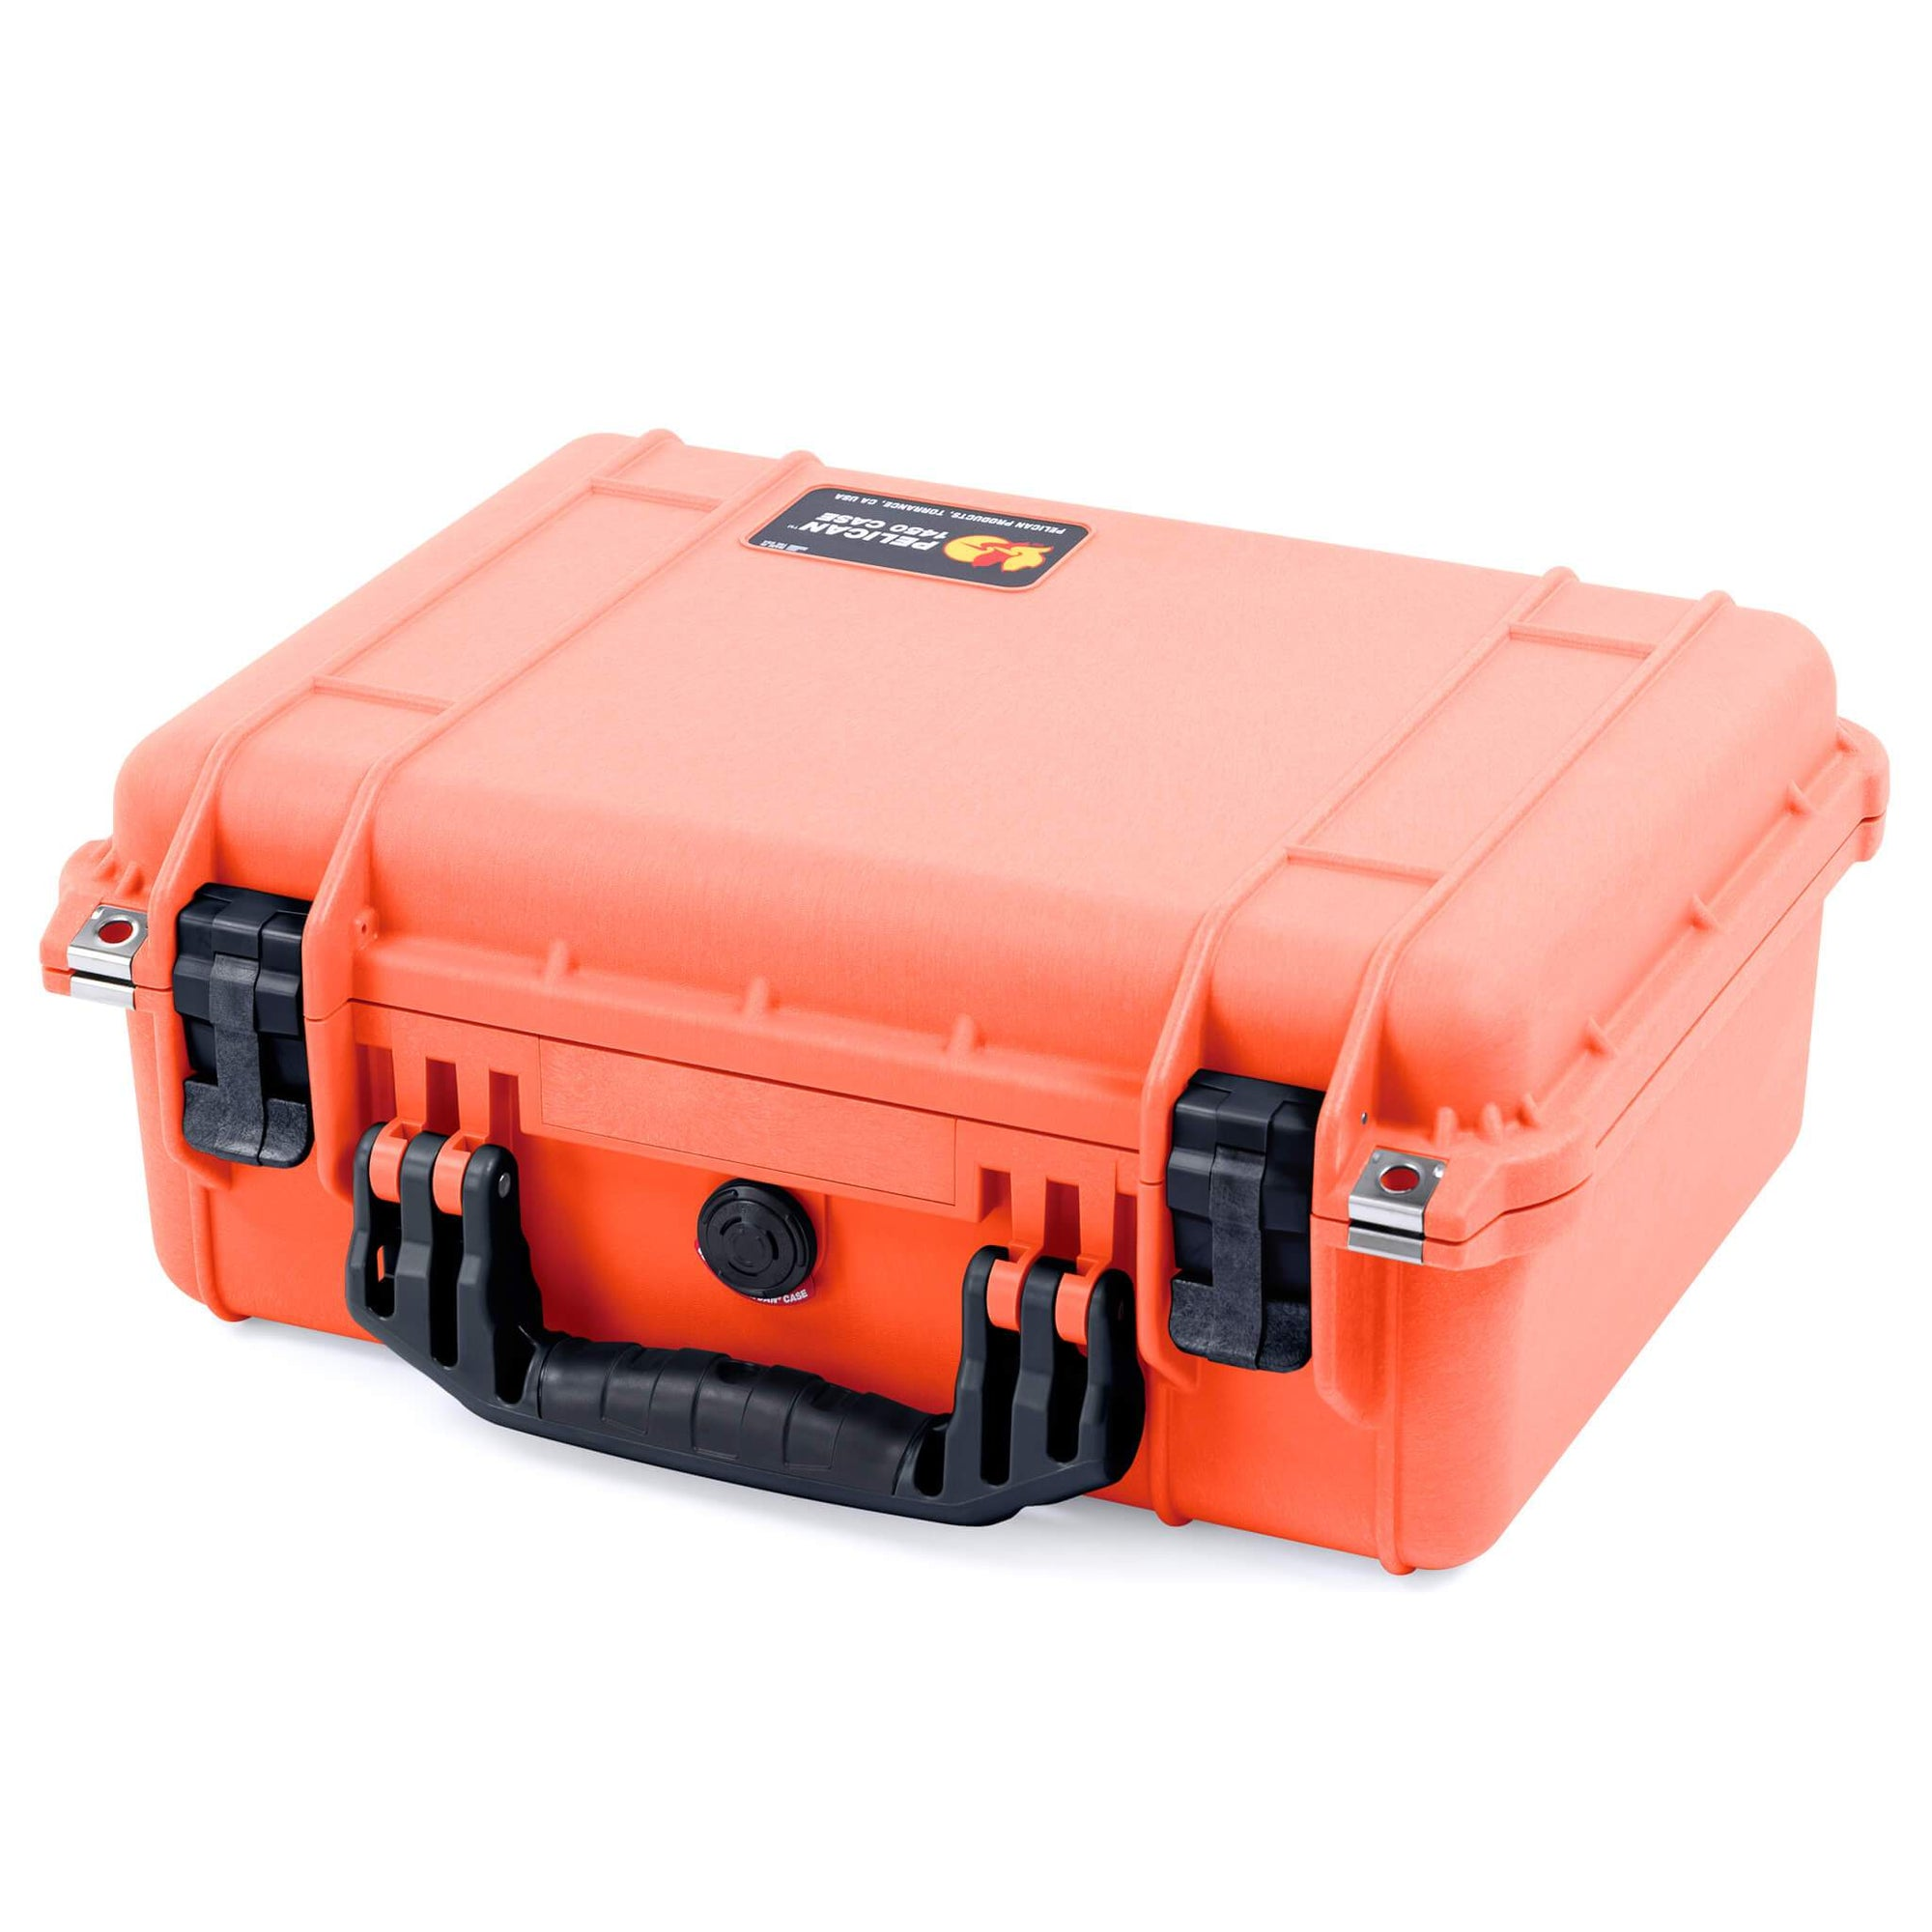 Pelican 1450 Case, Orange with Black Handle & Latches - Pelican Color Case